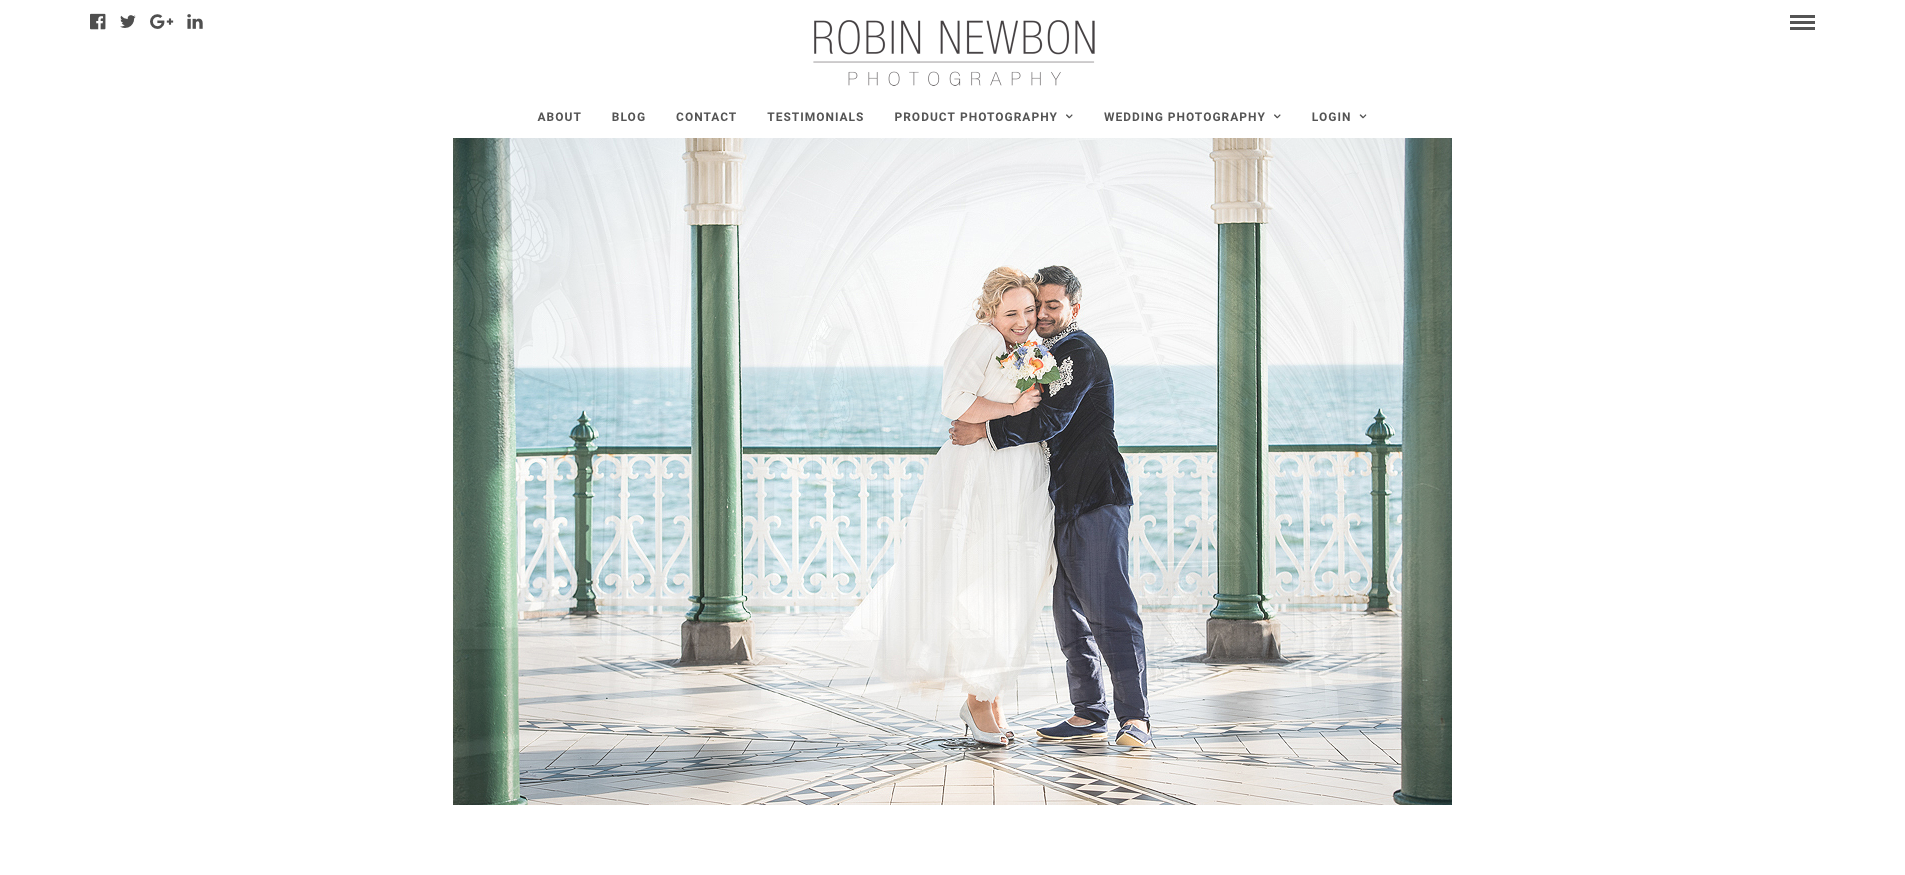 Robin Newbon Photography